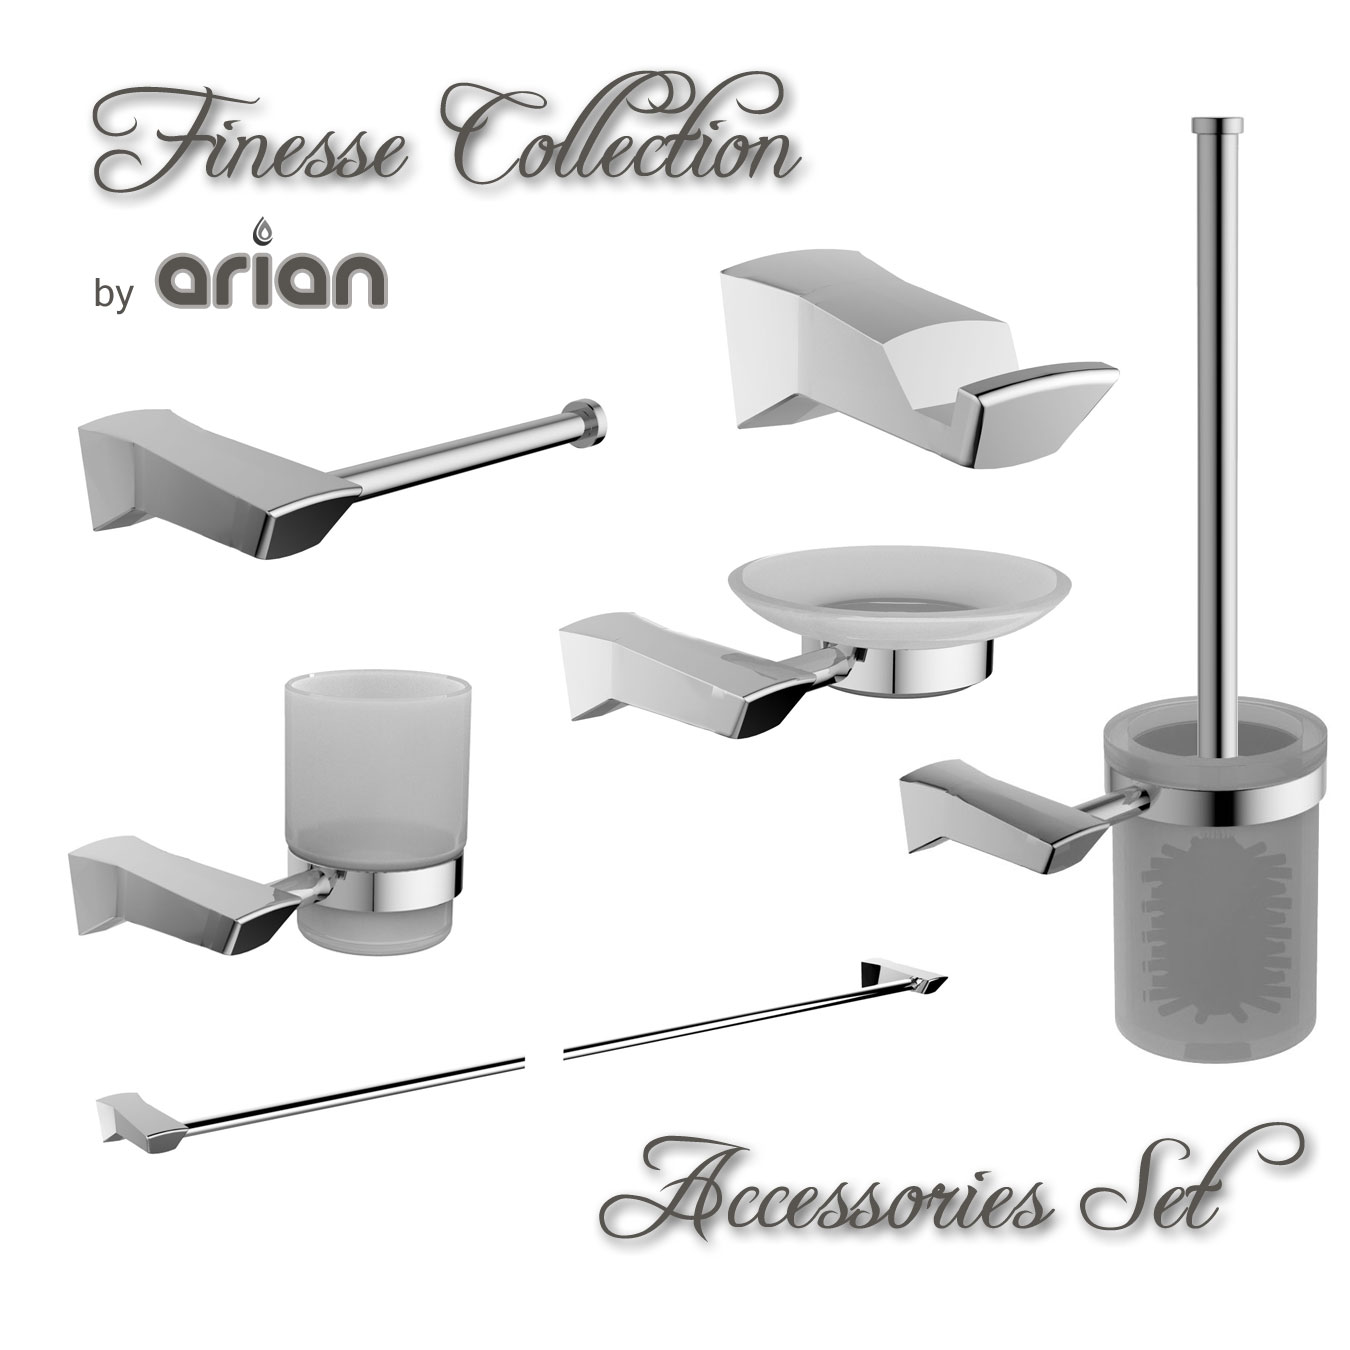 Arian Finesse Collection